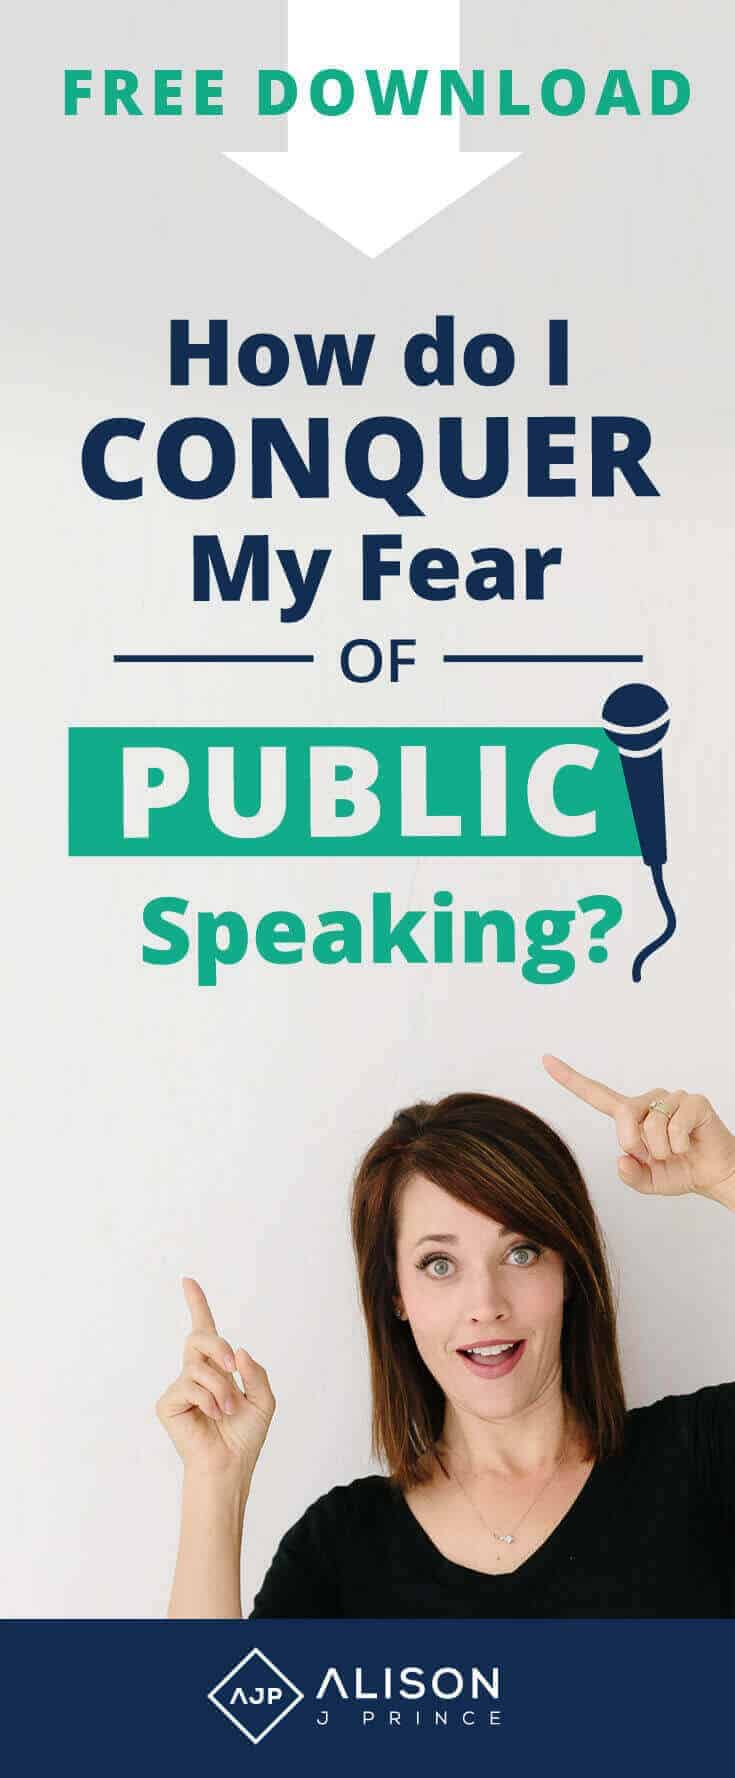 How do I conquer my fear of public speaking? Ecommerce entrepreneur Alison J. Prince